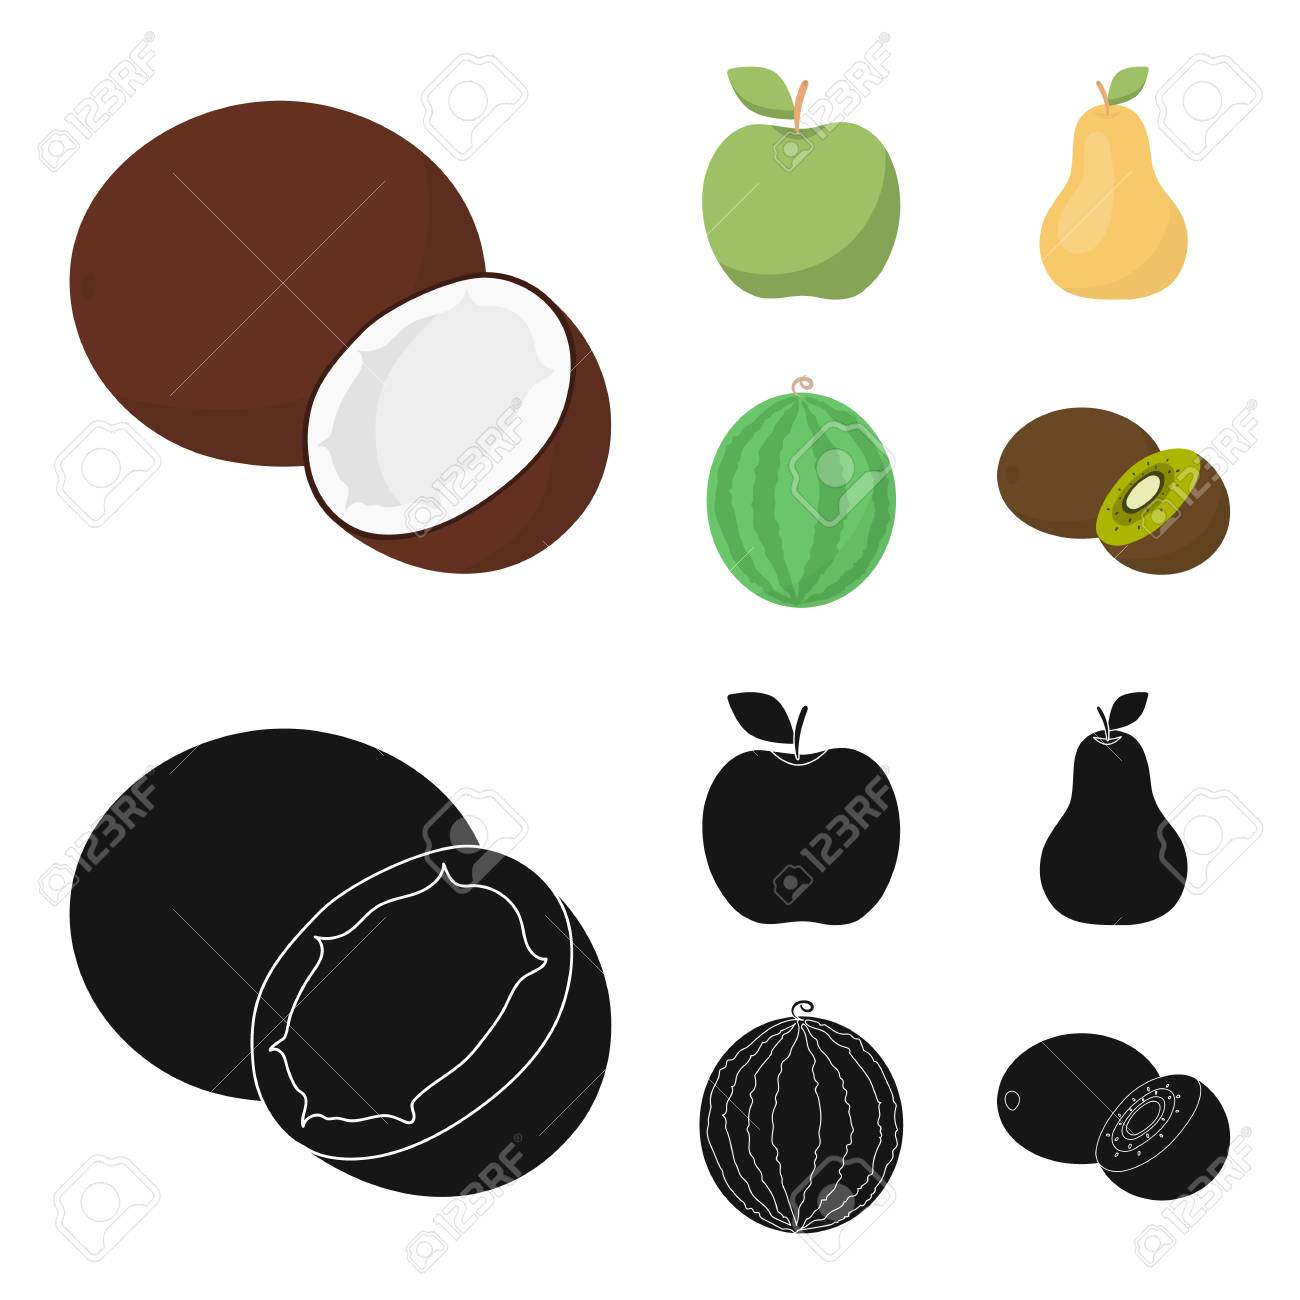 Coconut Apple Pear Watermelonuits Set Collection Icons Stock